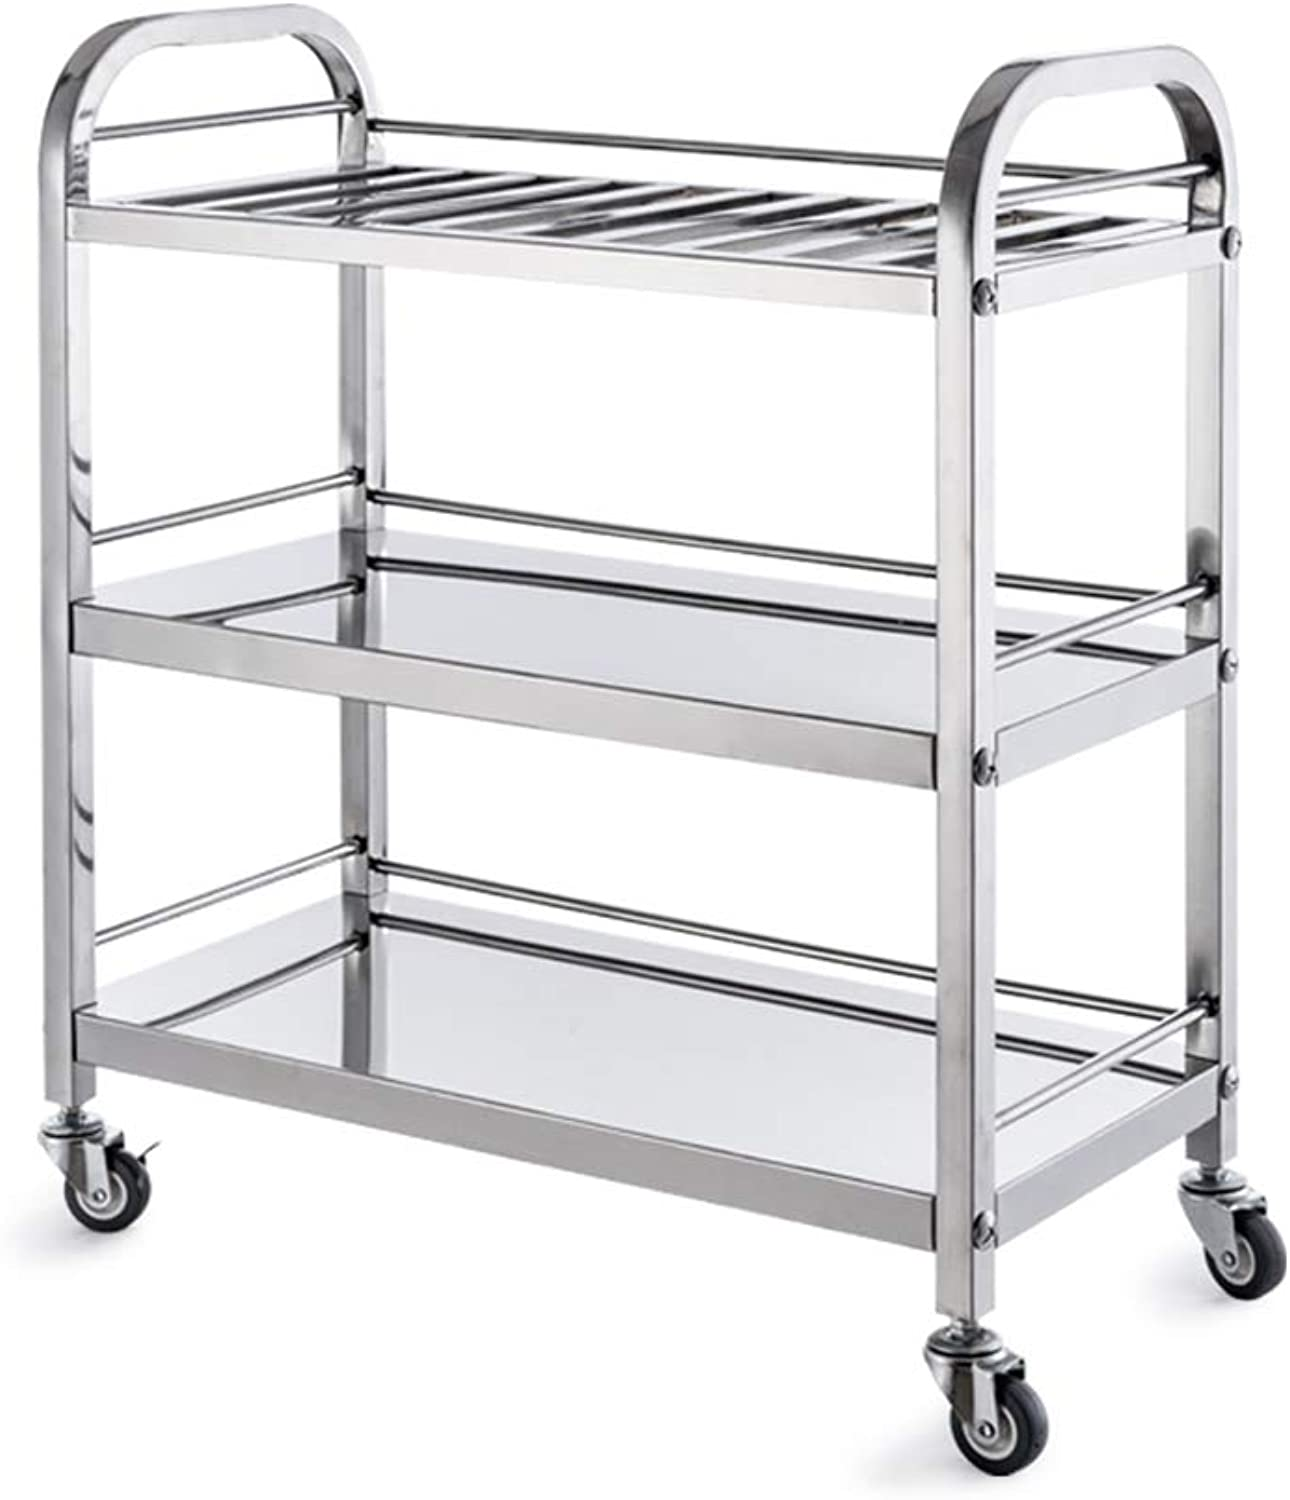 Rolling Service Storage Trolley, Stainless Steel Kitchen Dining Cart Hot Pot Dining Cart Vegetable and Fruit Drying Rack, 3-Tier Utility Cart